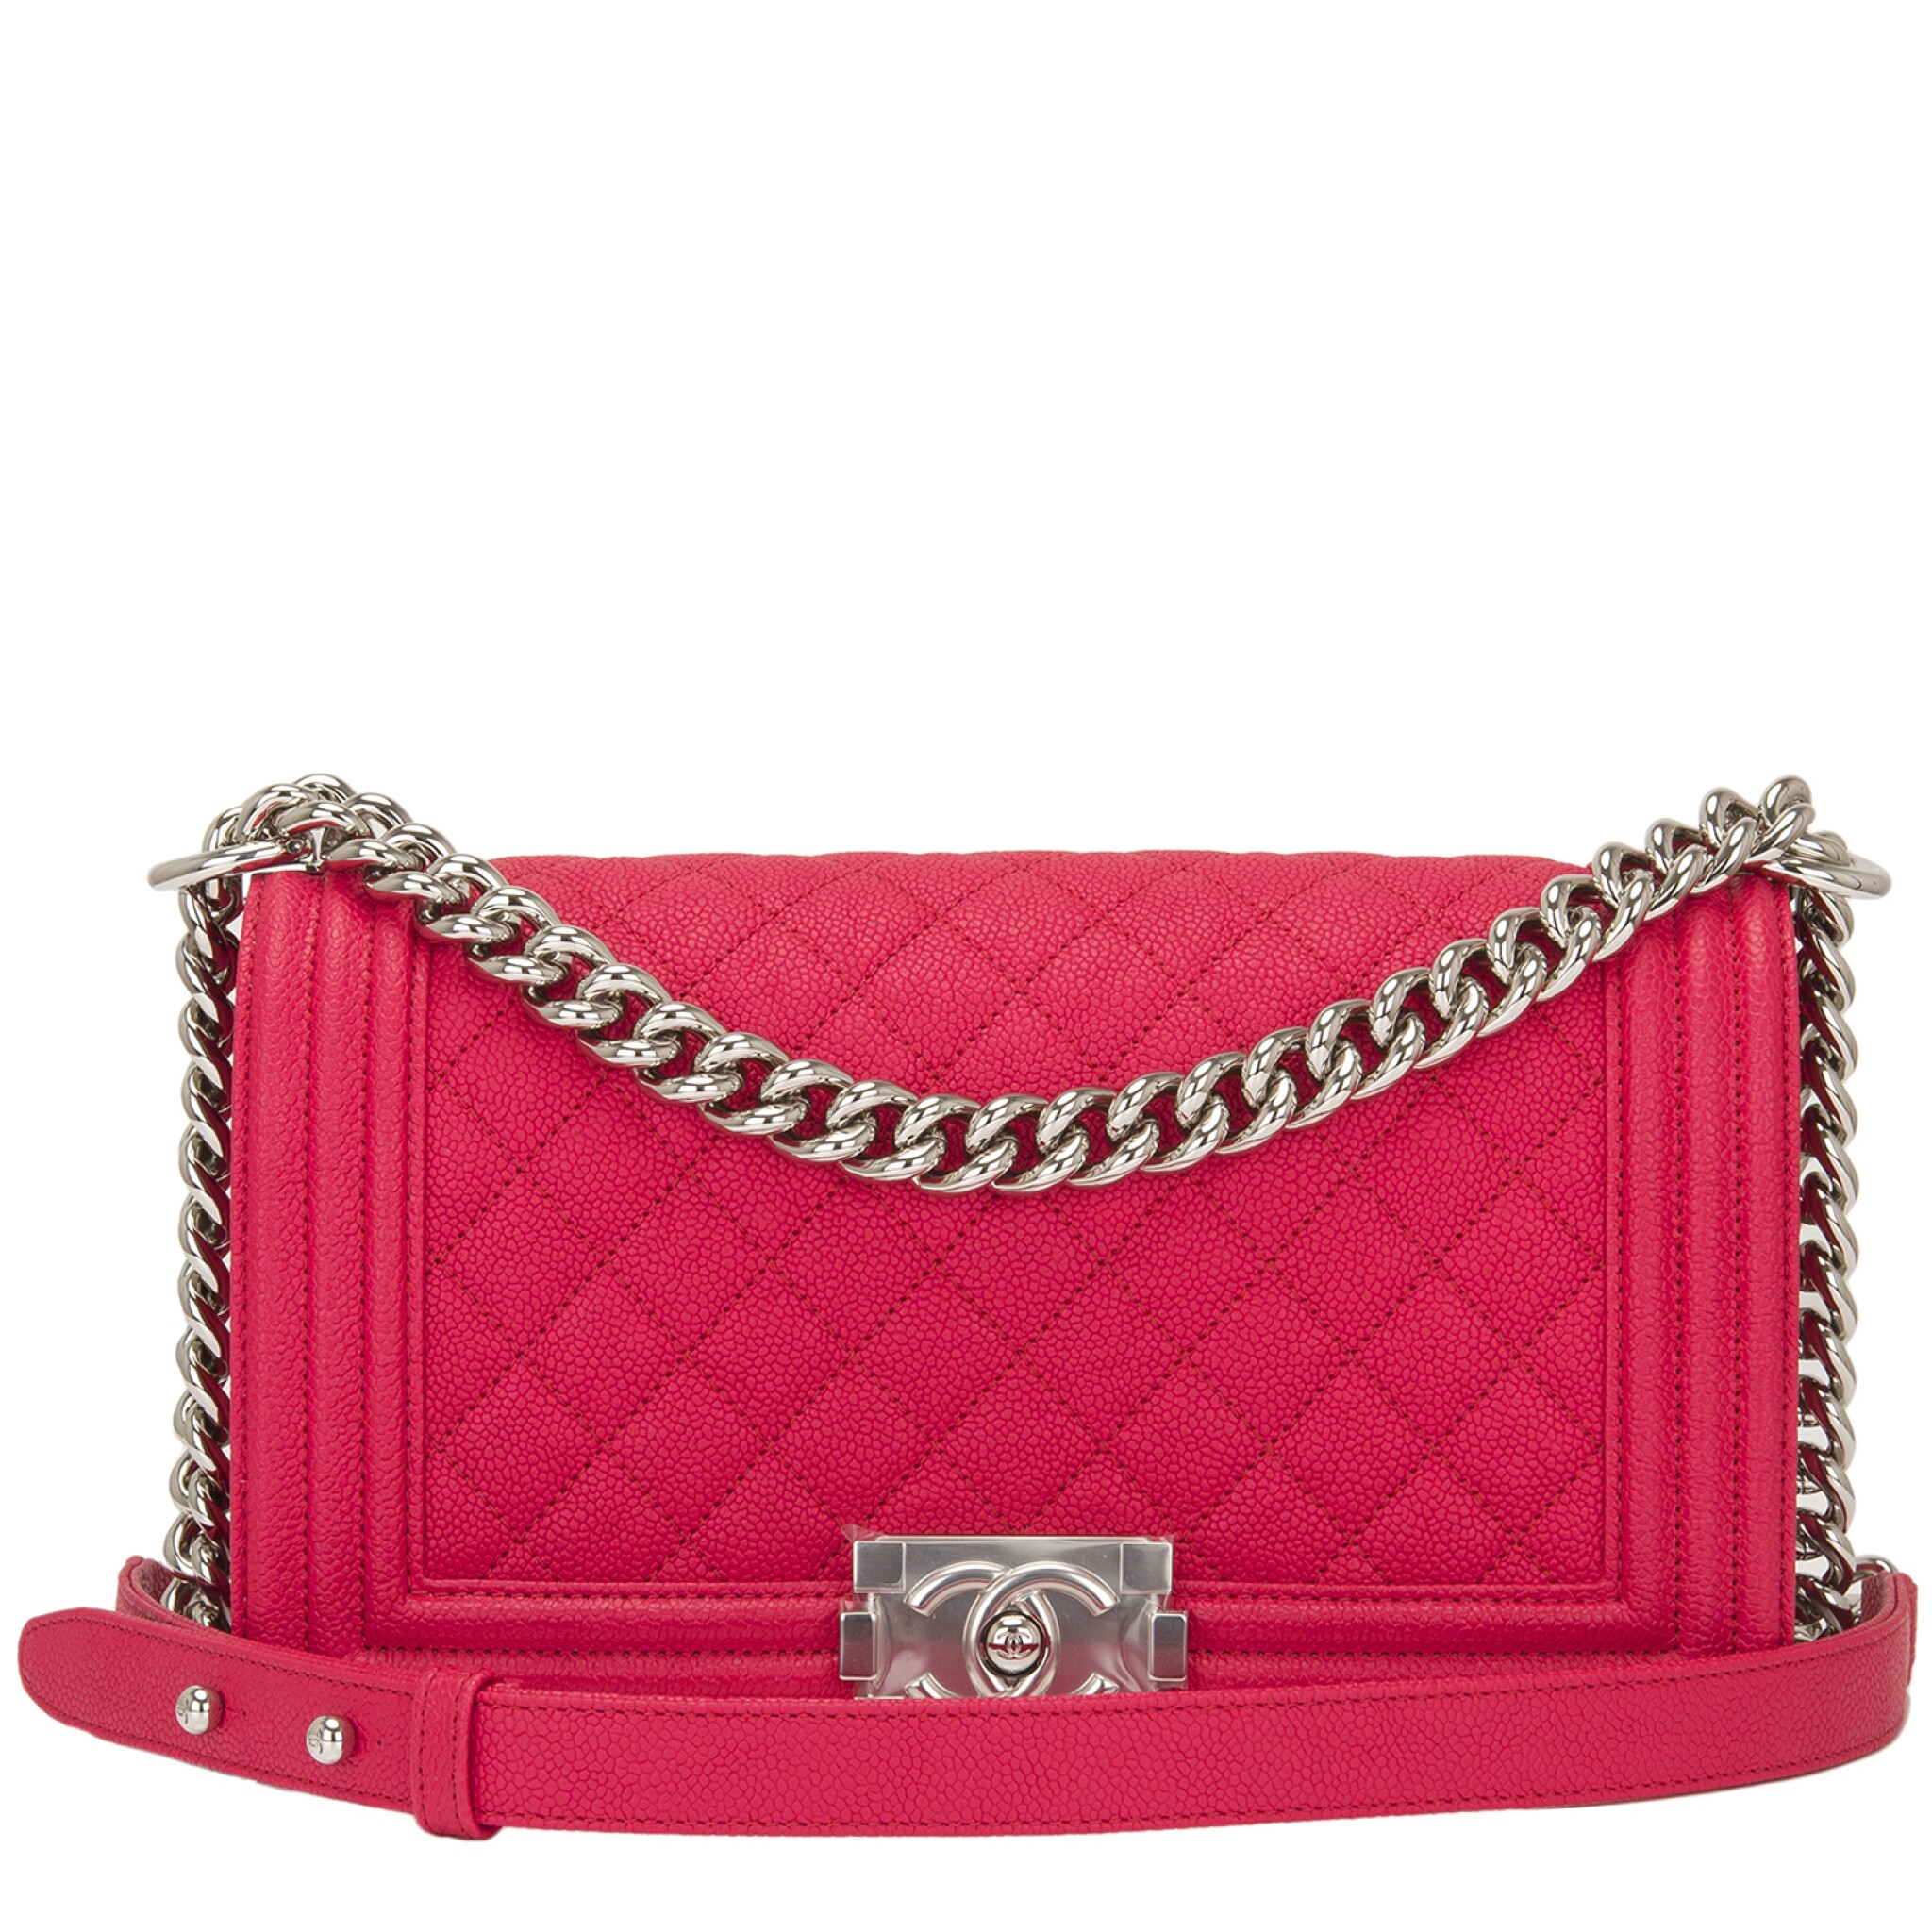 View full screen - View 1 of Lot 186.  Chanel Red Quilted Old Medium Boy Bag of Caviar Leather with Silver Tone Hardware.